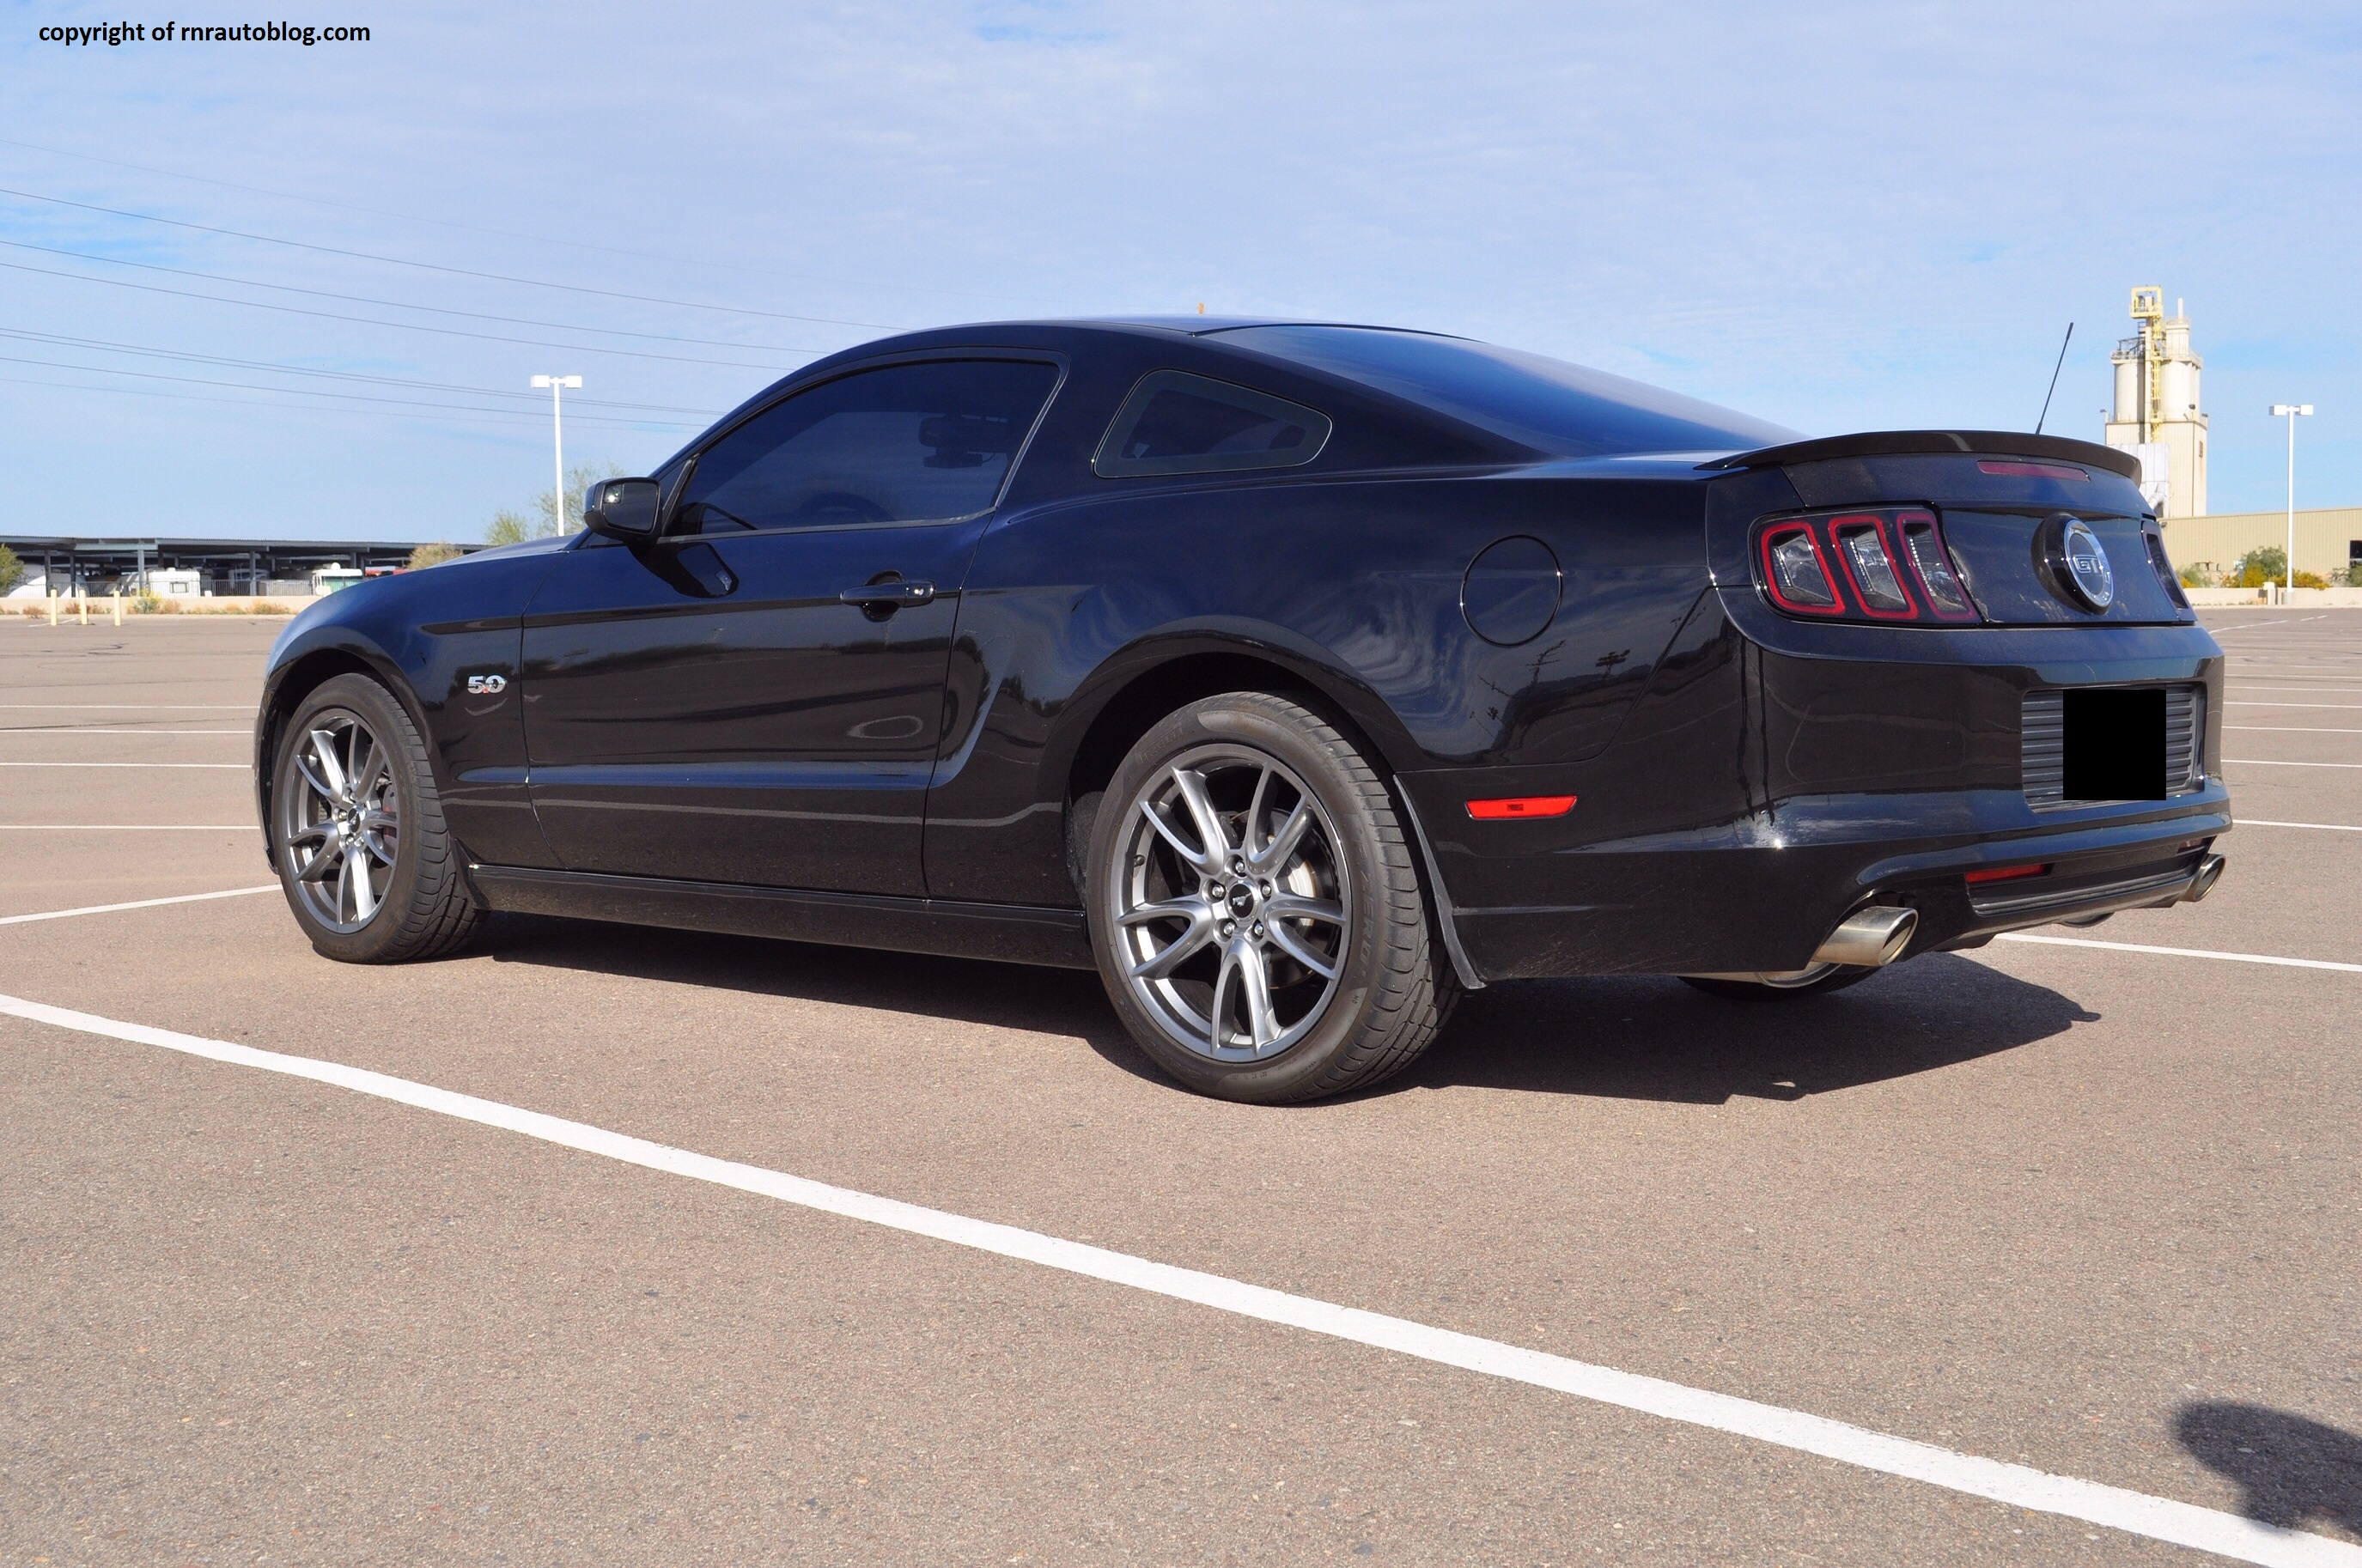 2014 ford mustang gt review rnr automotive blog. Cars Review. Best American Auto & Cars Review